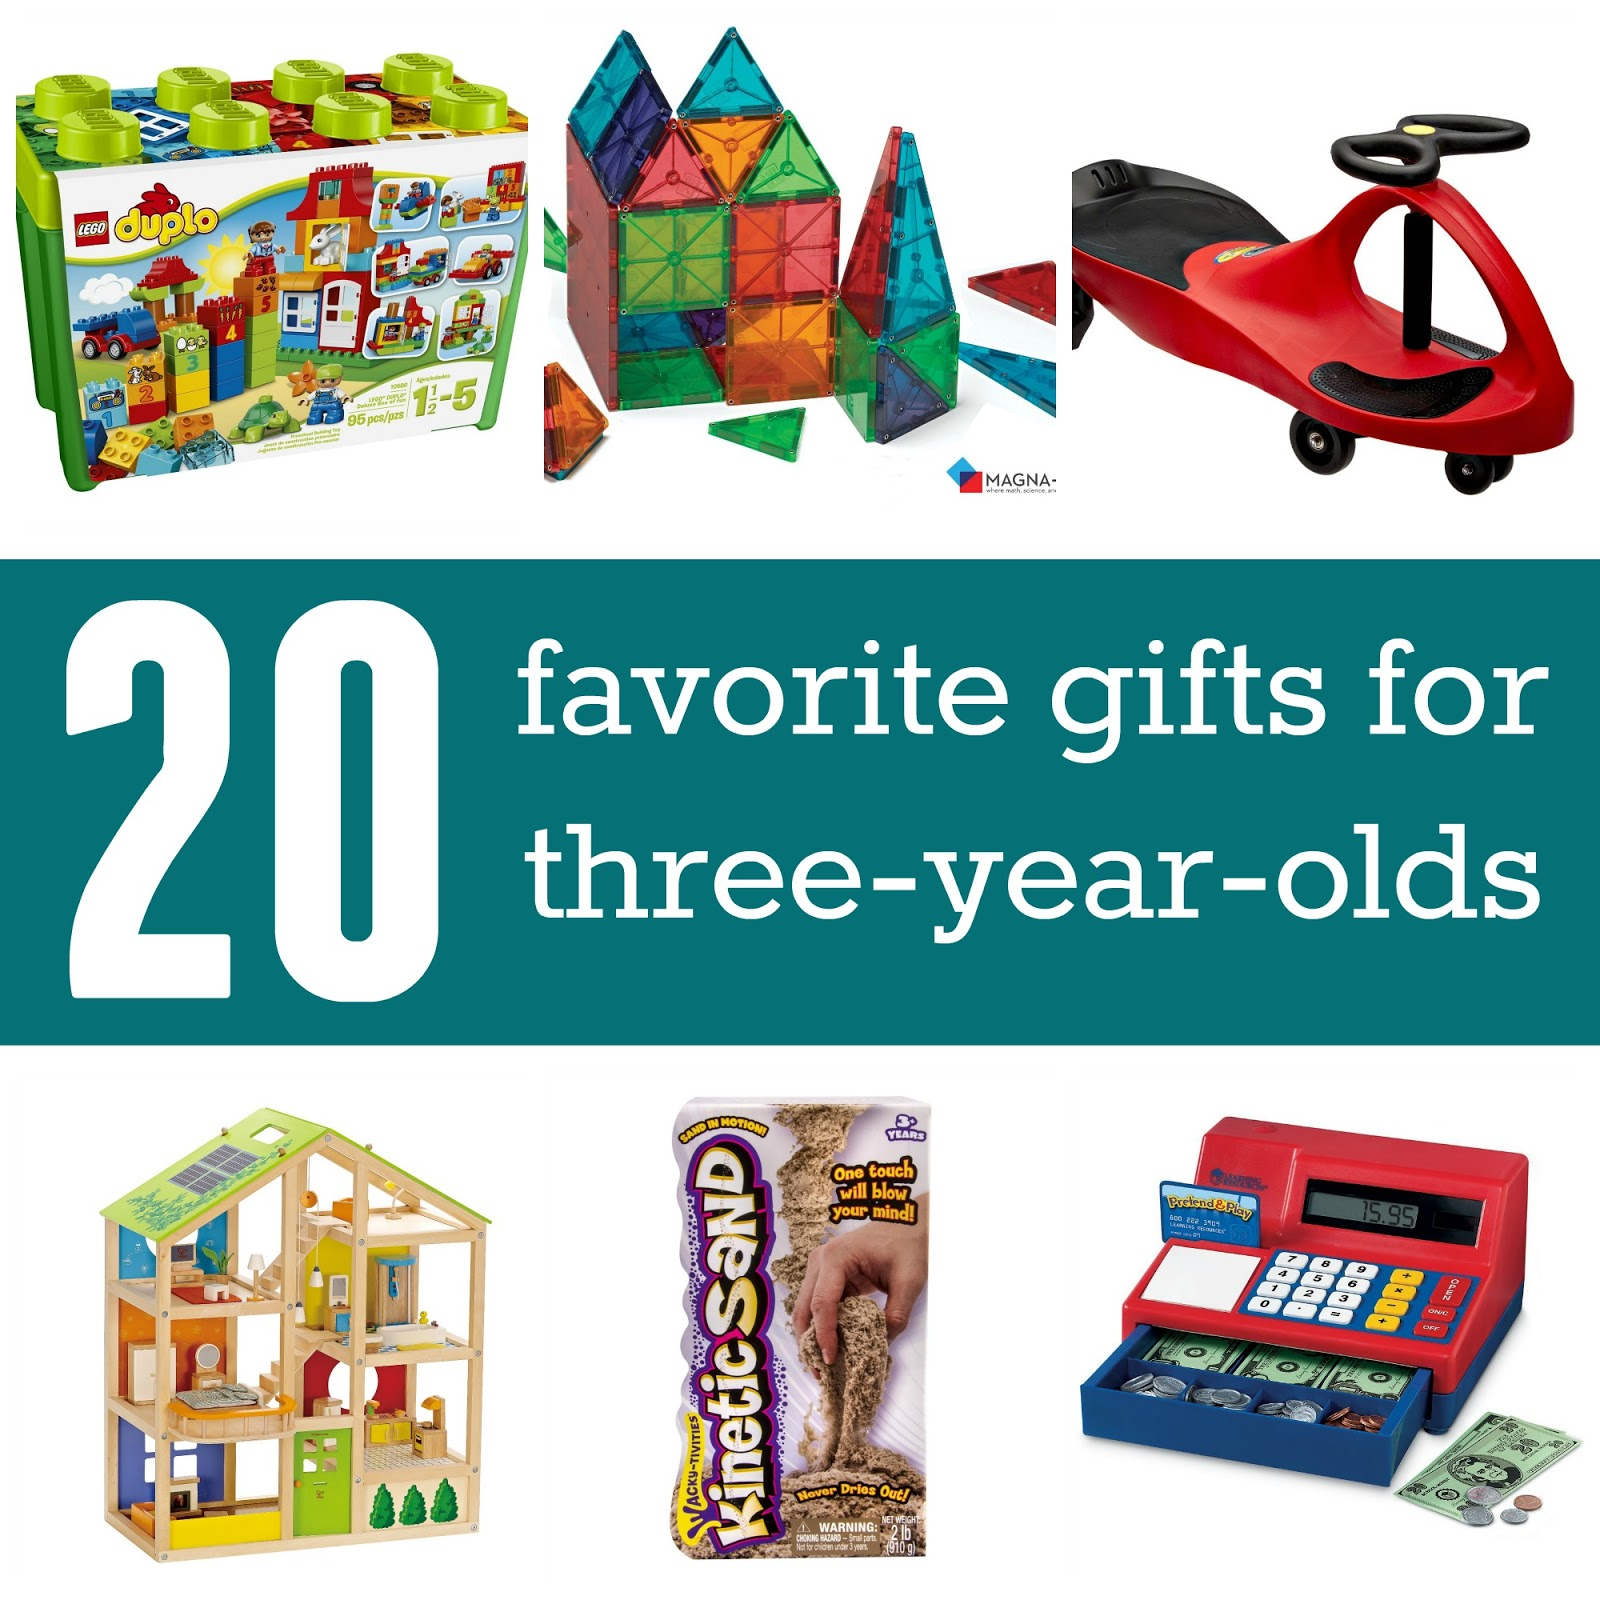 Top Gifts for 3 Year Olds Pictures